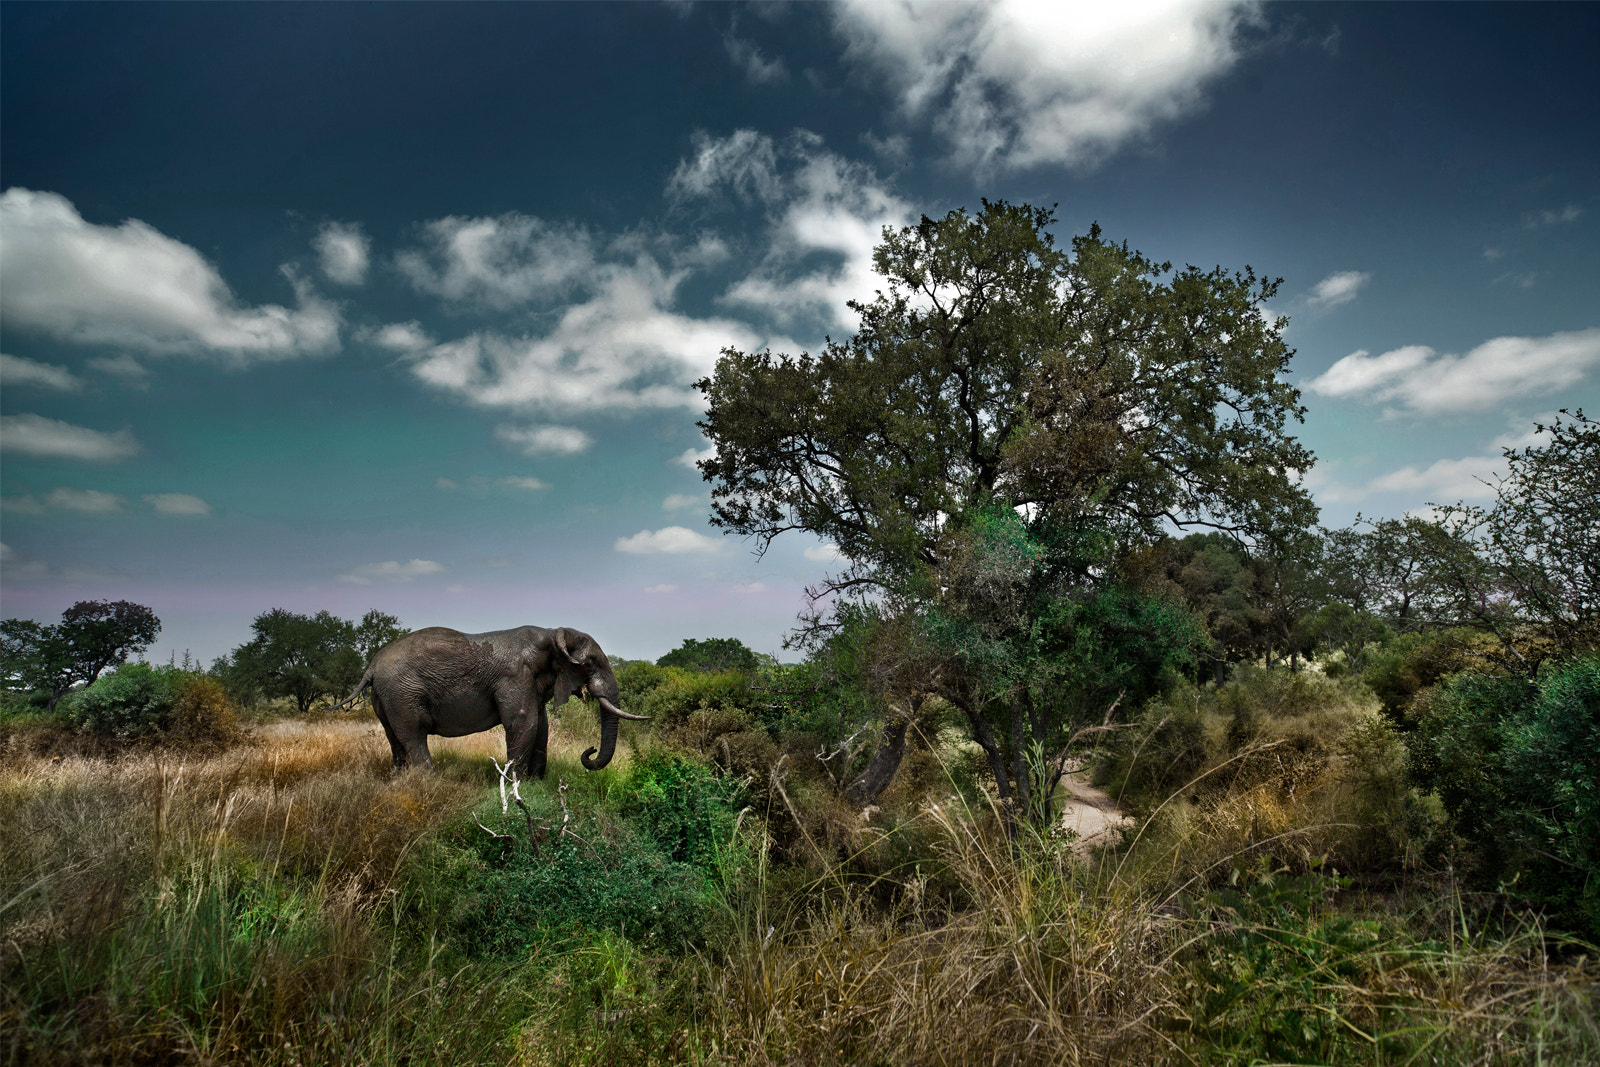 Photograph elephant in kruger by George Veltchev on 500px